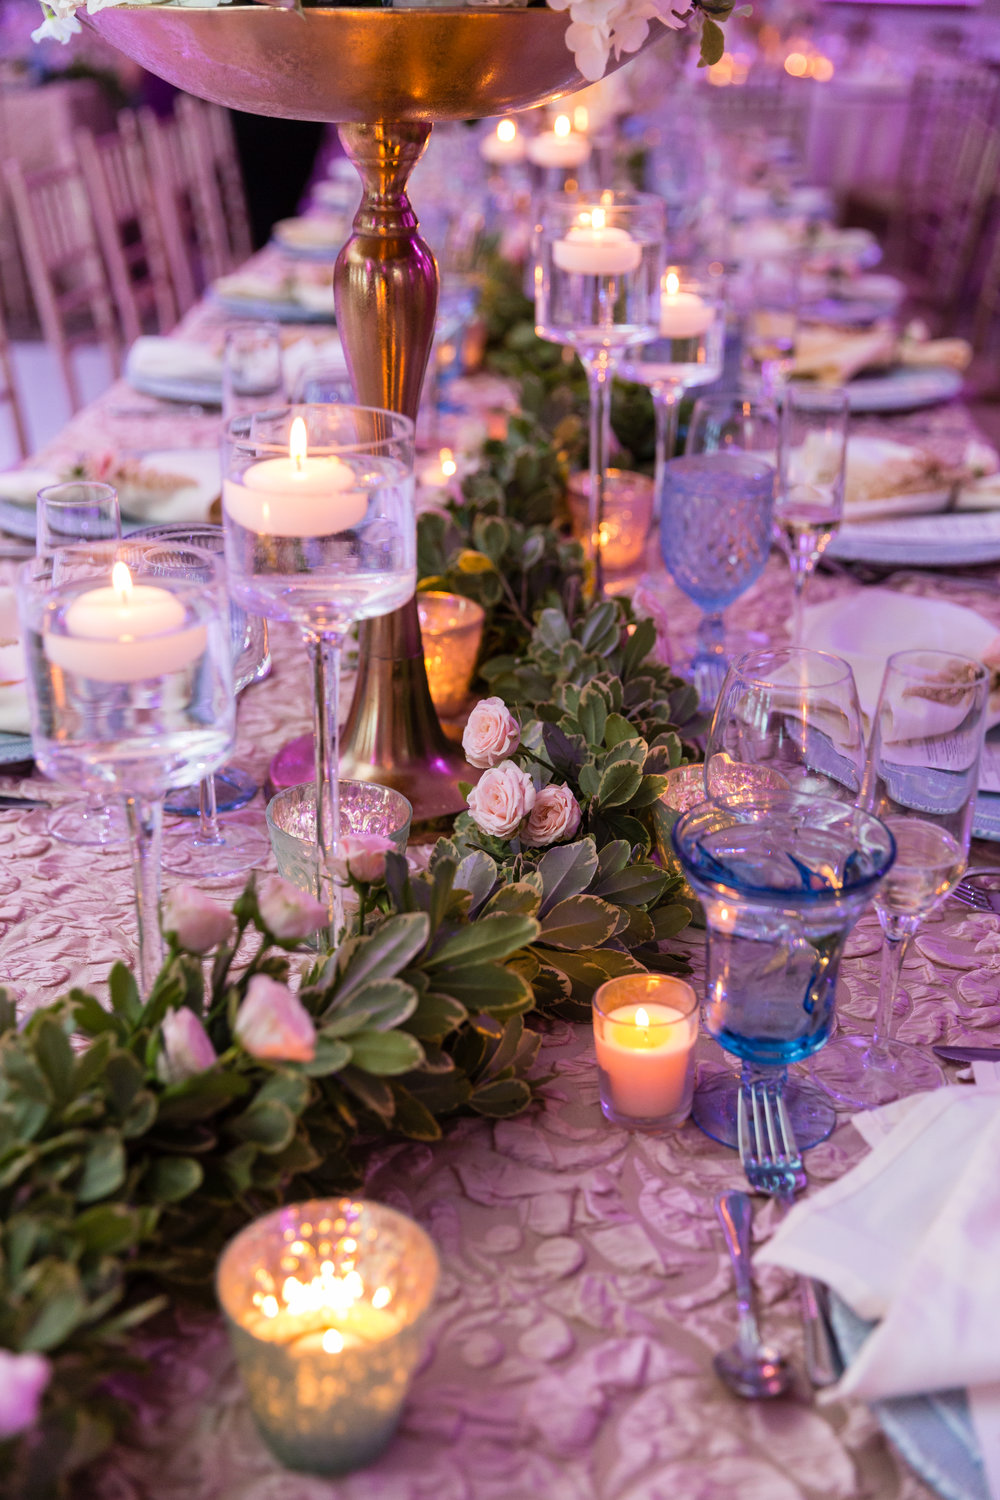 INDIAN WEDDING RECEPTION TABLE DECOR.jpg